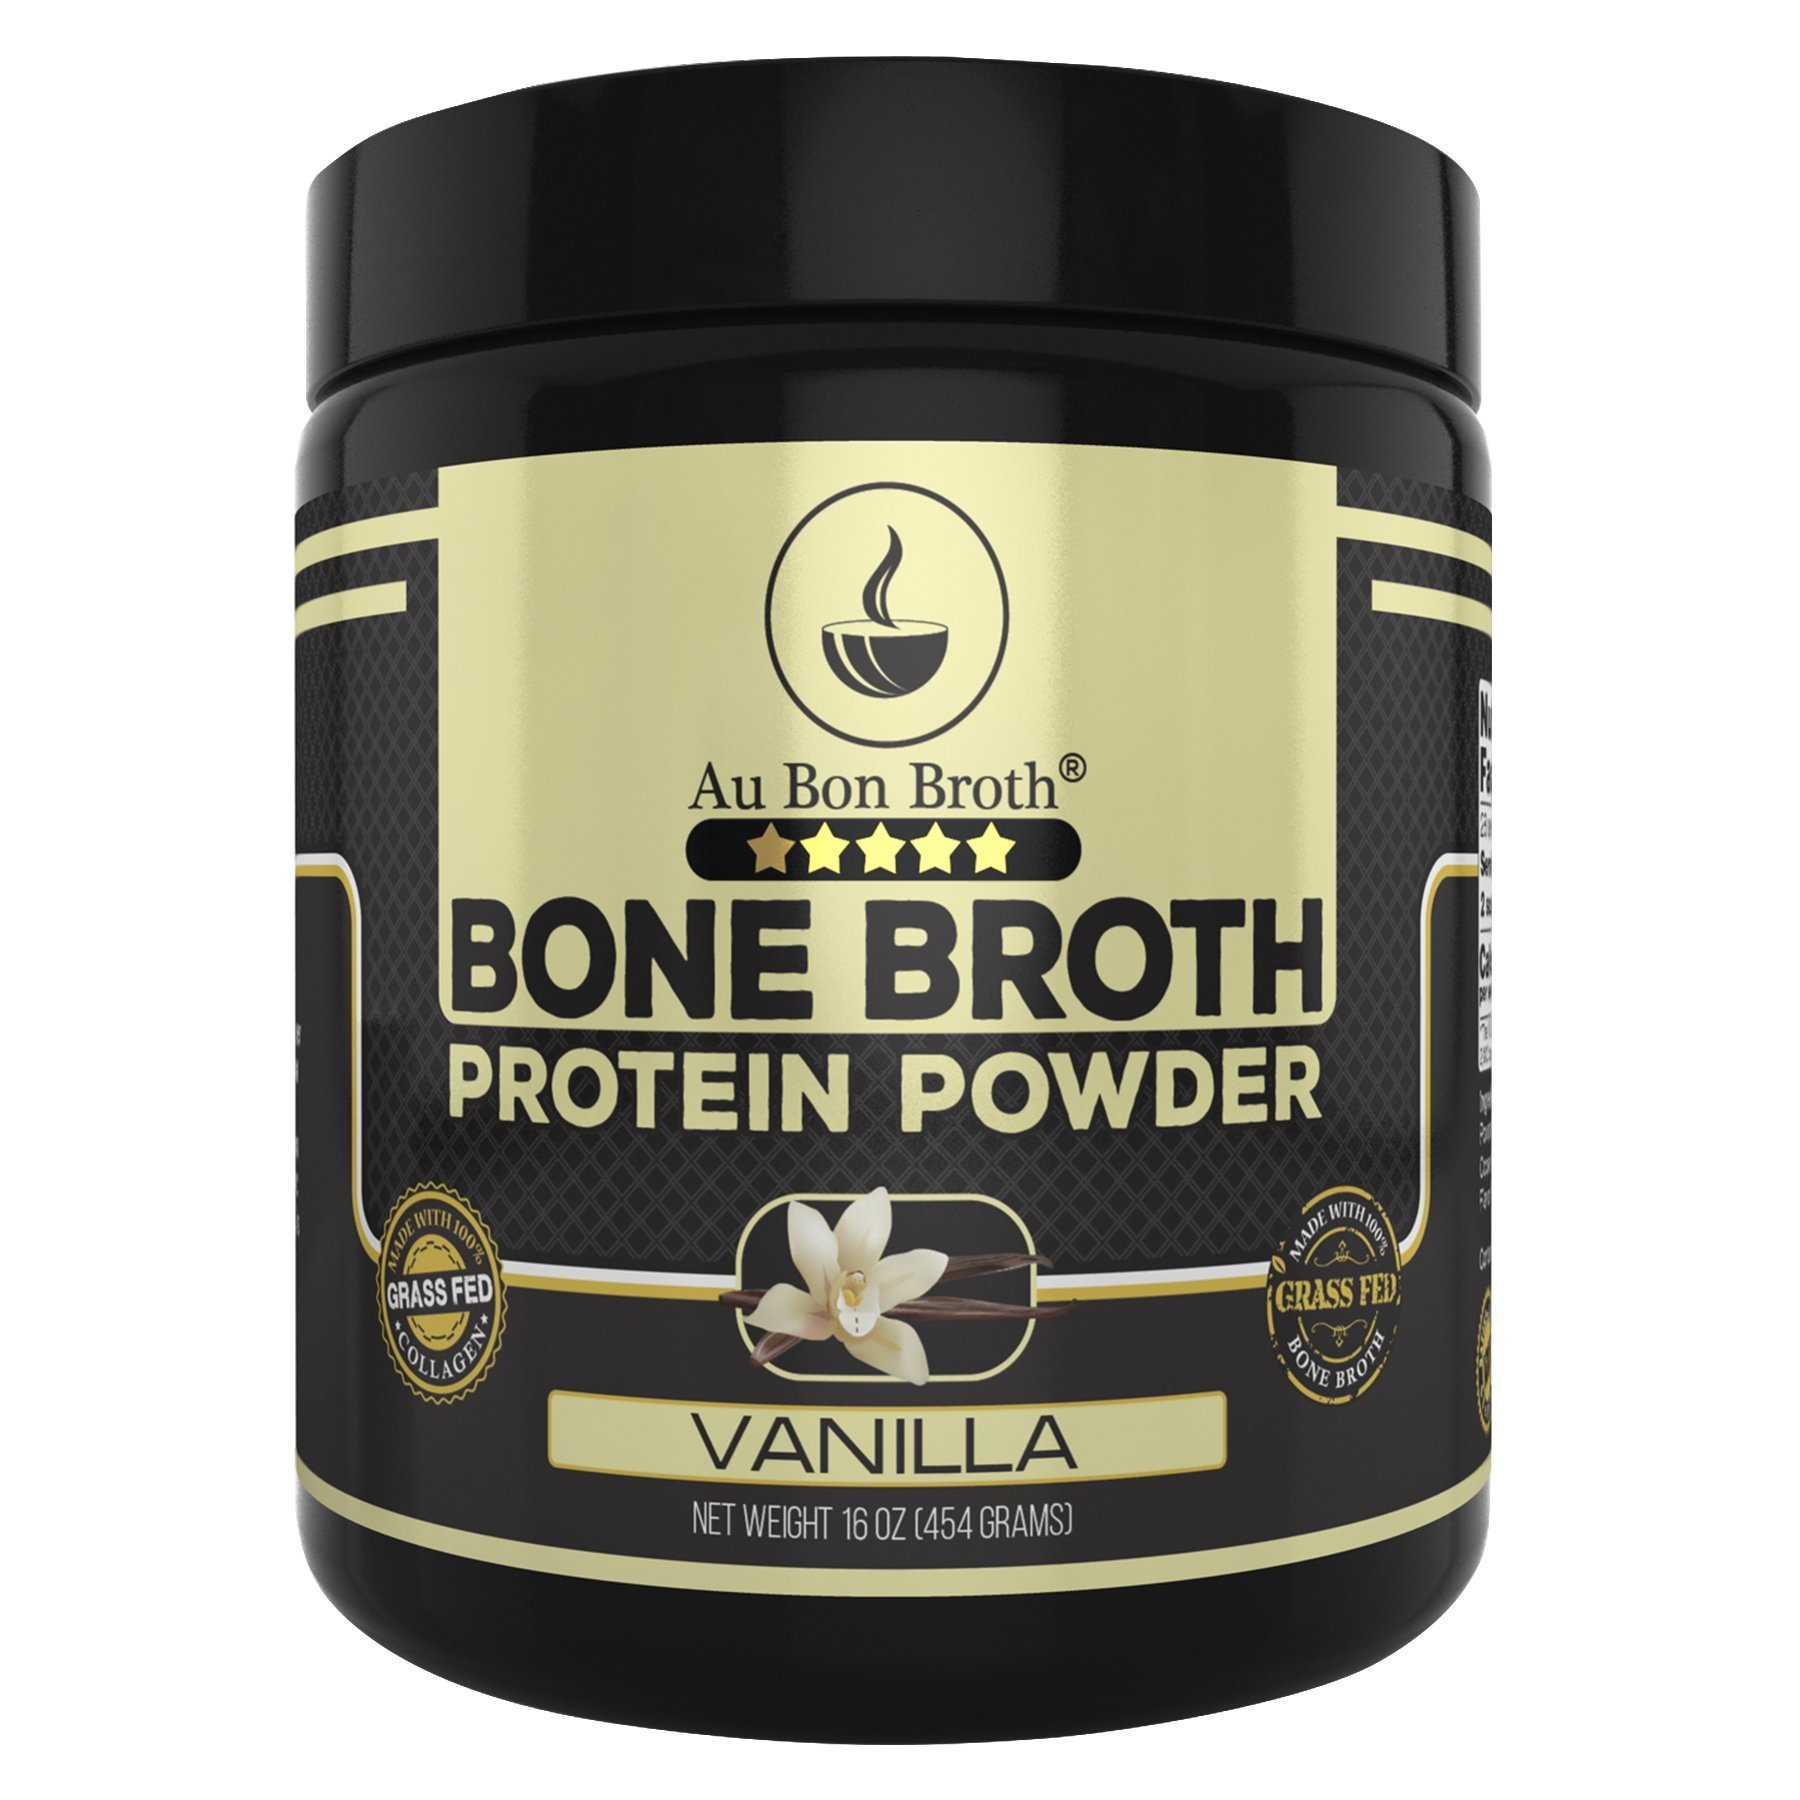 Genuine Grass Fed Organic Bone Broth Protein Powder Collagen 16oz. Vanilla Flavor 28 Servings, Mixes Instantly, Gluten Free, Pasture Raised, 100% Sourced, Made in USA, NOT from Concentrate by Au Bon Broth